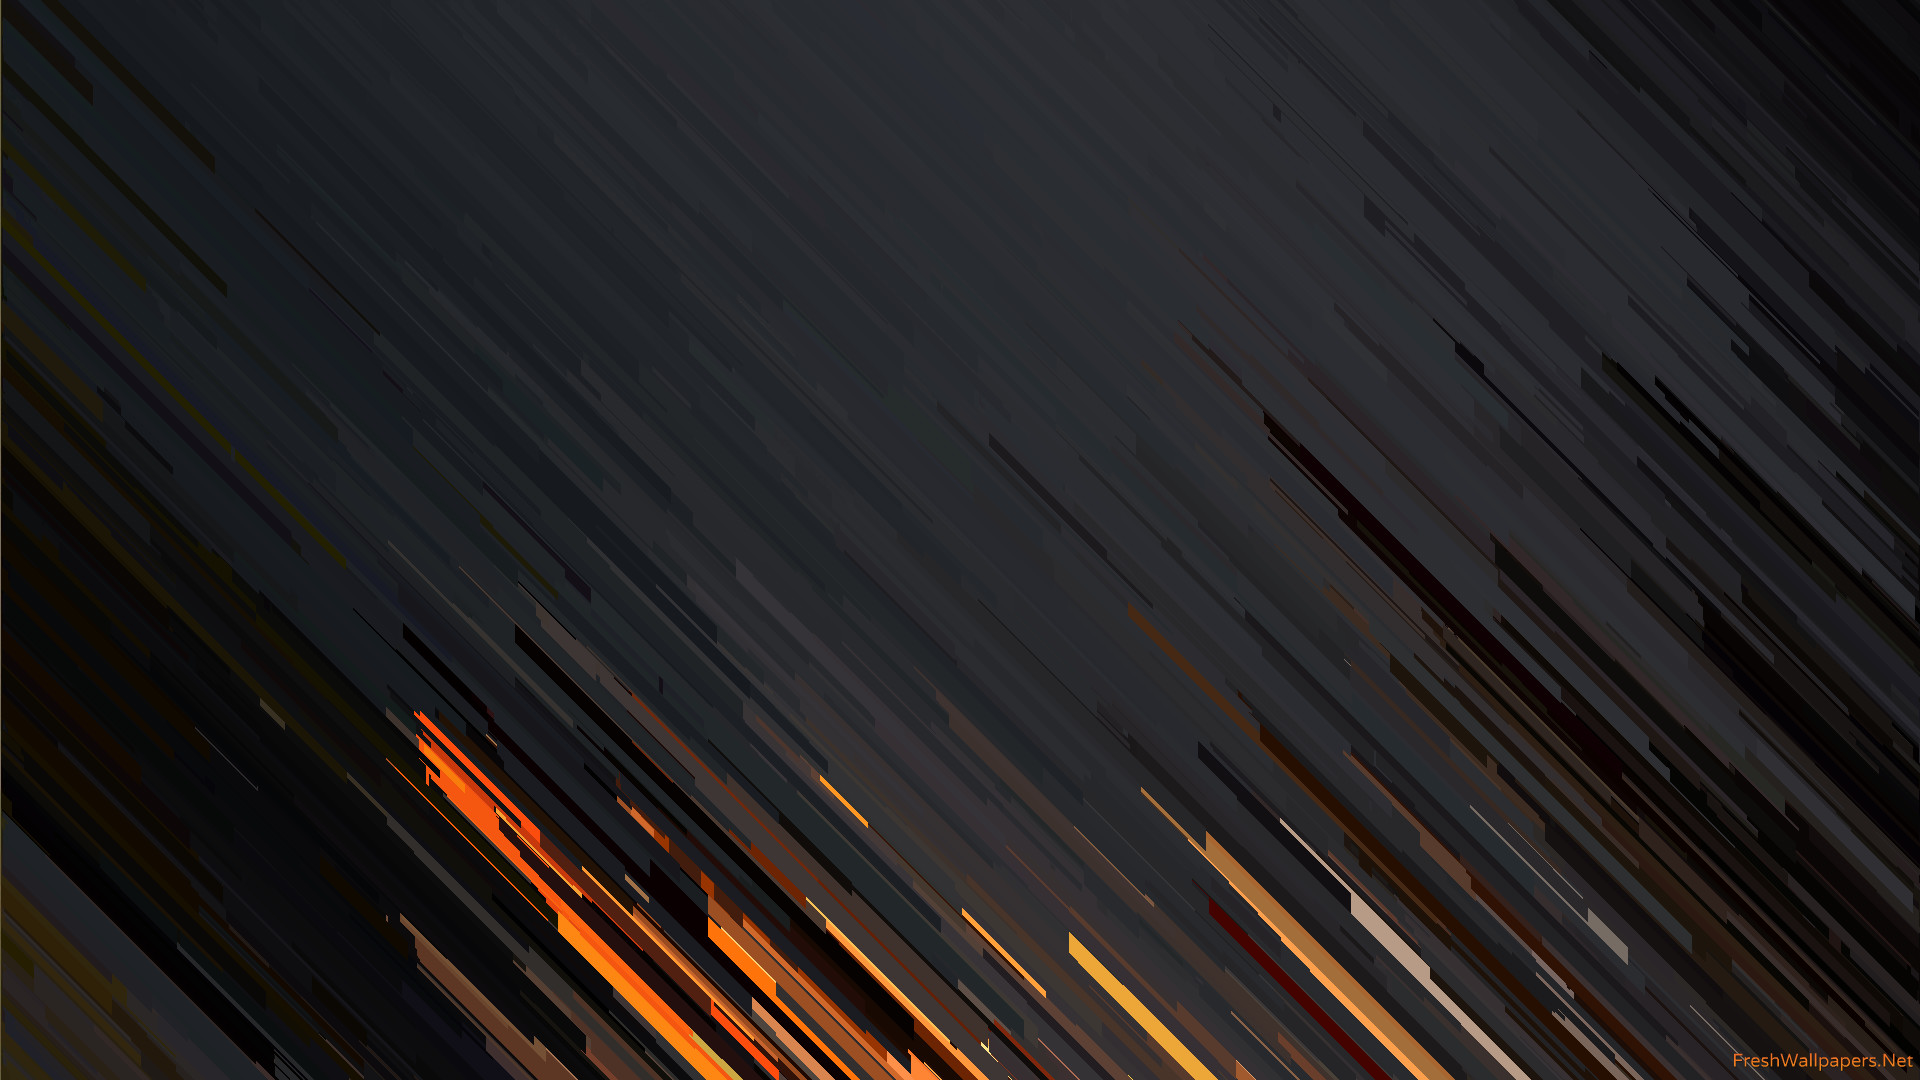 Artistic Abstract Wallpaper Free | Abstract Wallpapers | Pinterest |  Wallpaper